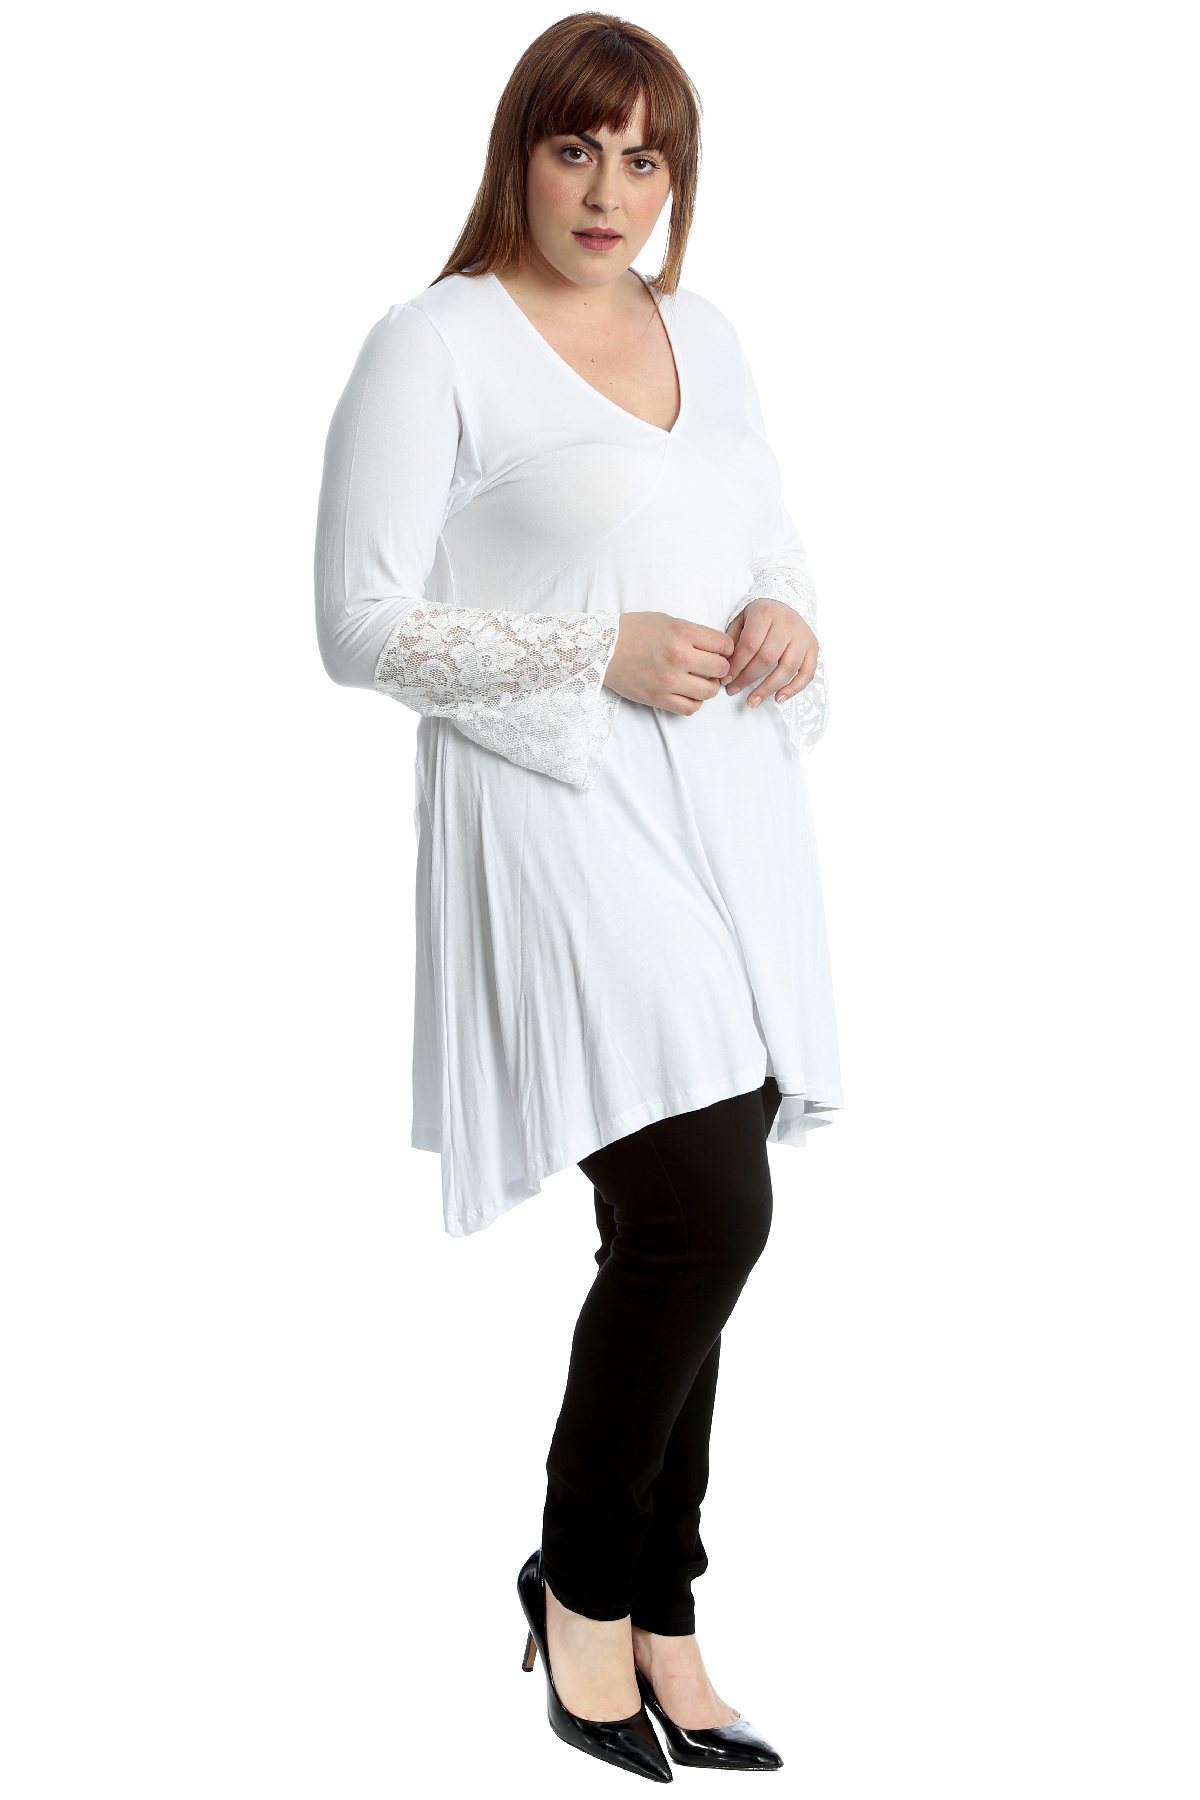 Details about New Womens Plus Size Dress Ladies Lace Sleeves Tunic V Neck  A-Line Sale Top Long